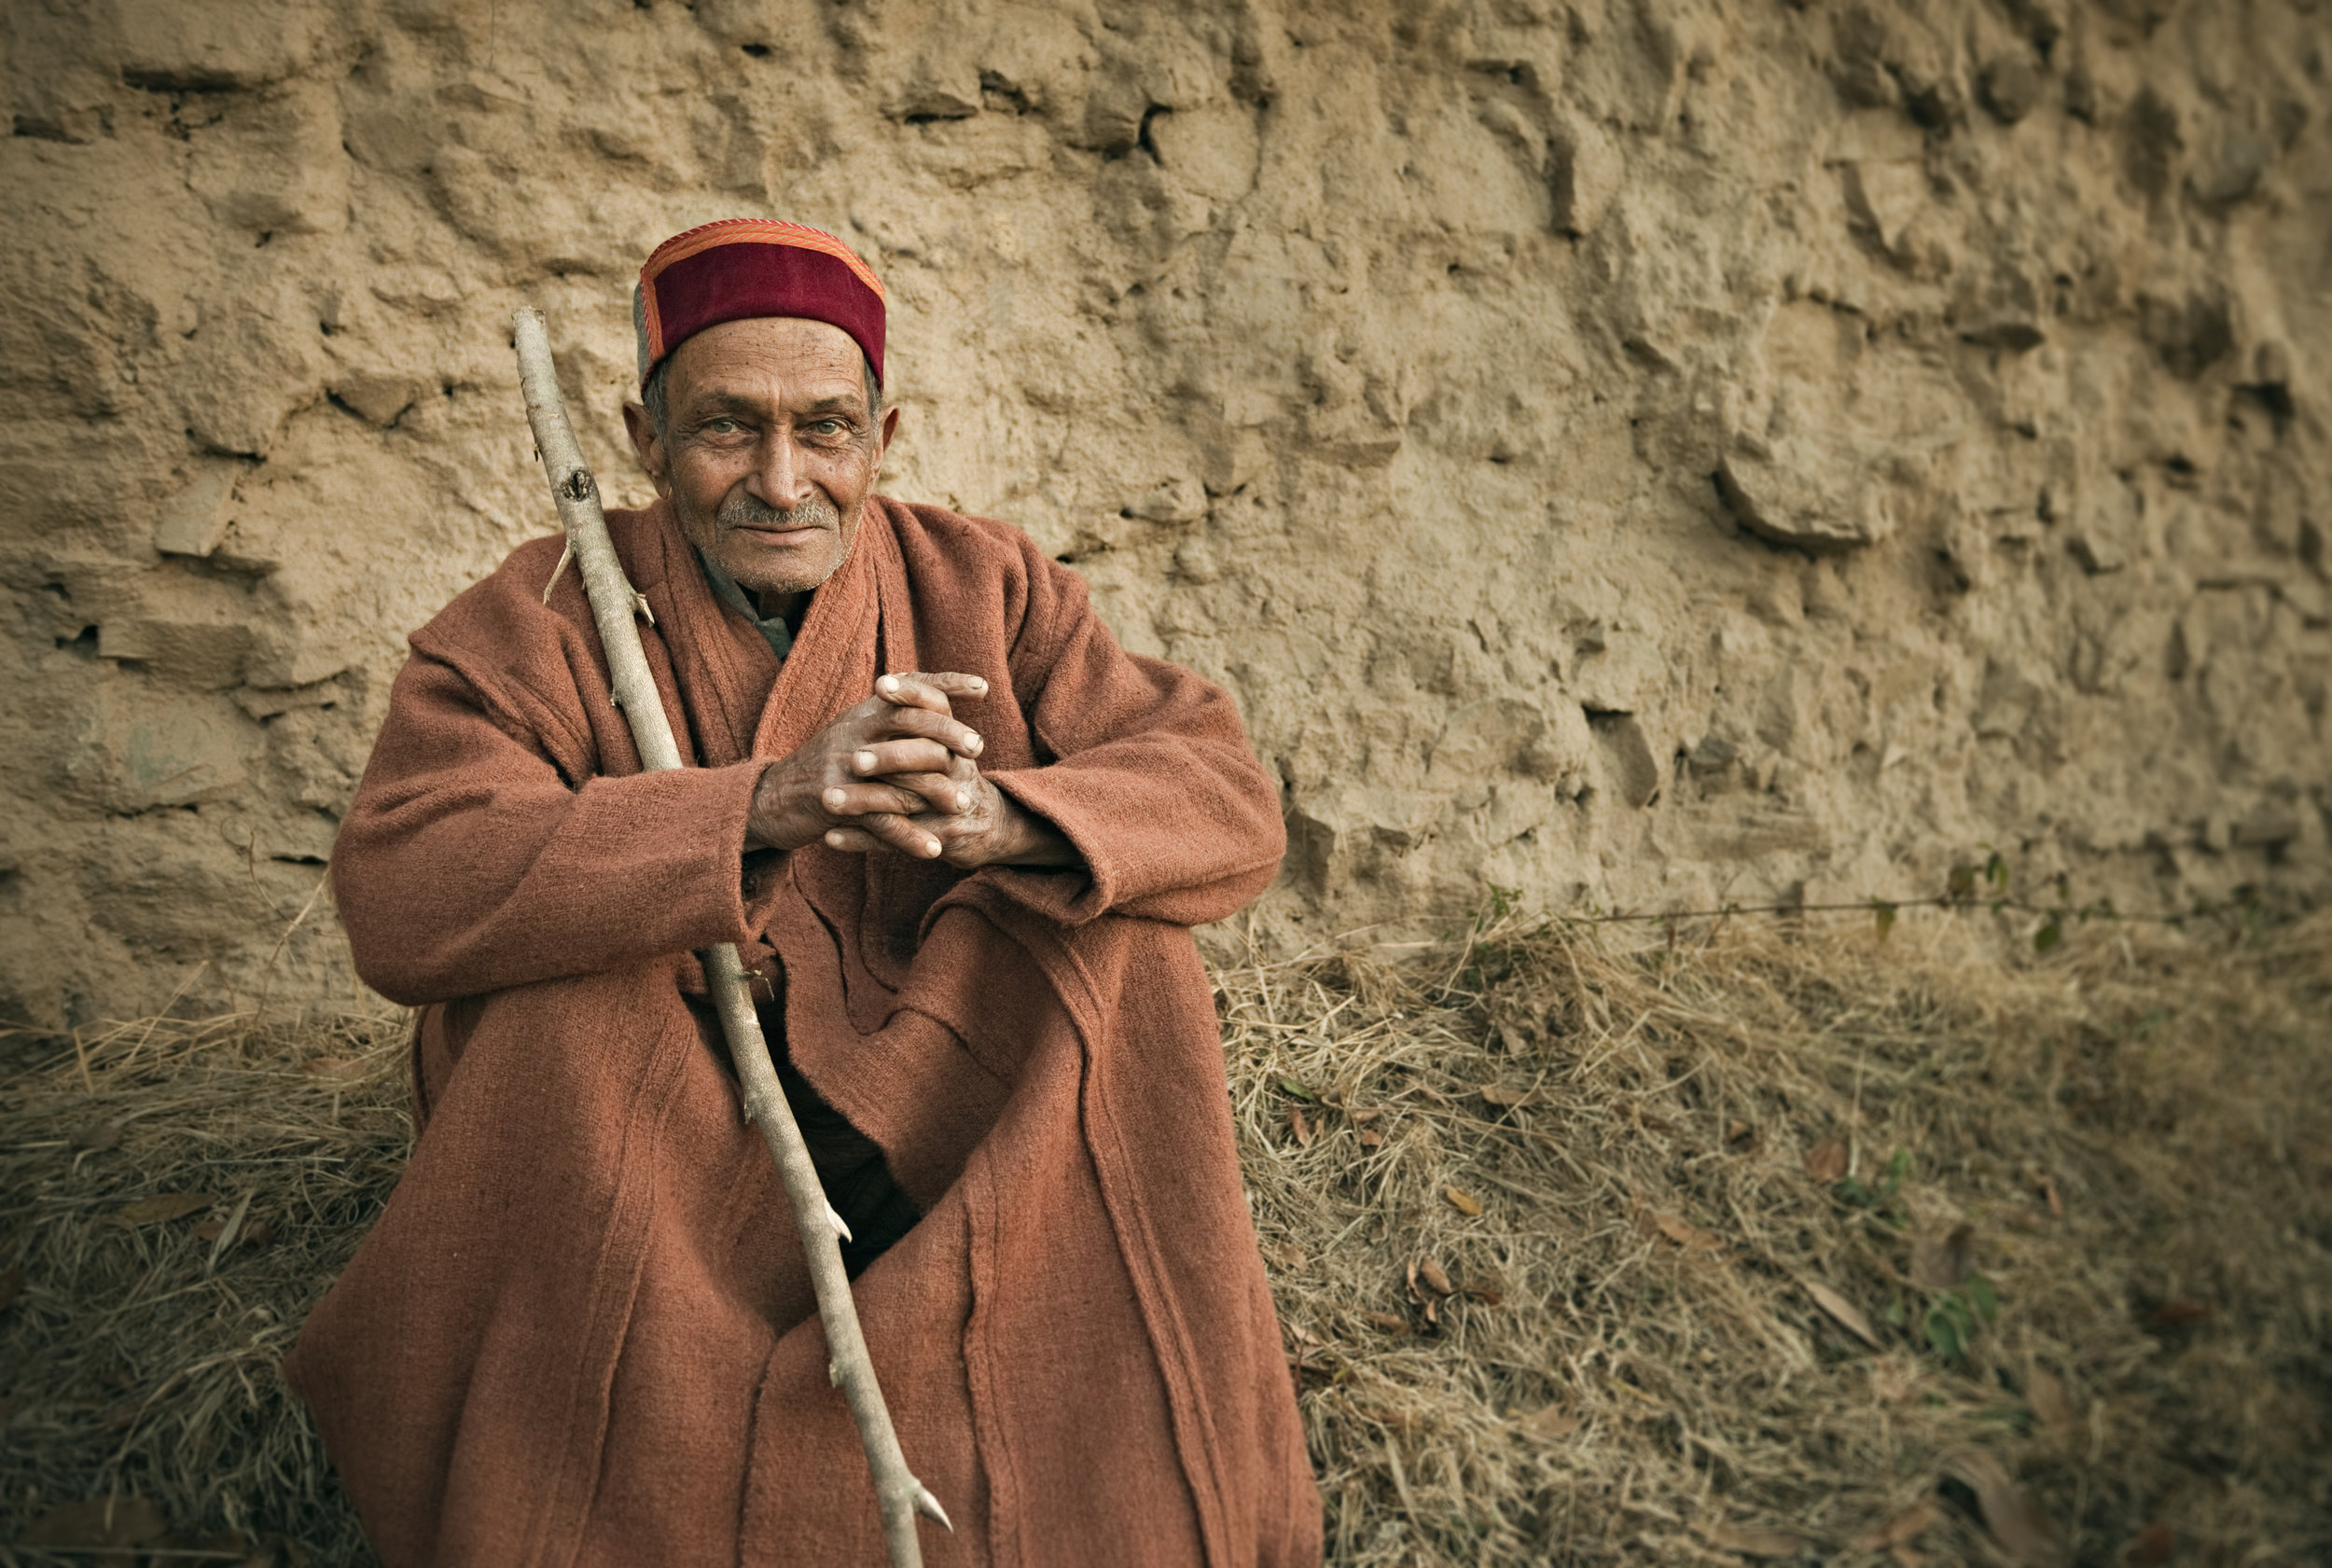 Real-people-from-rural-India-Portrait-of-a-Senior-Man-163017407_5616x3265 copy.jpg